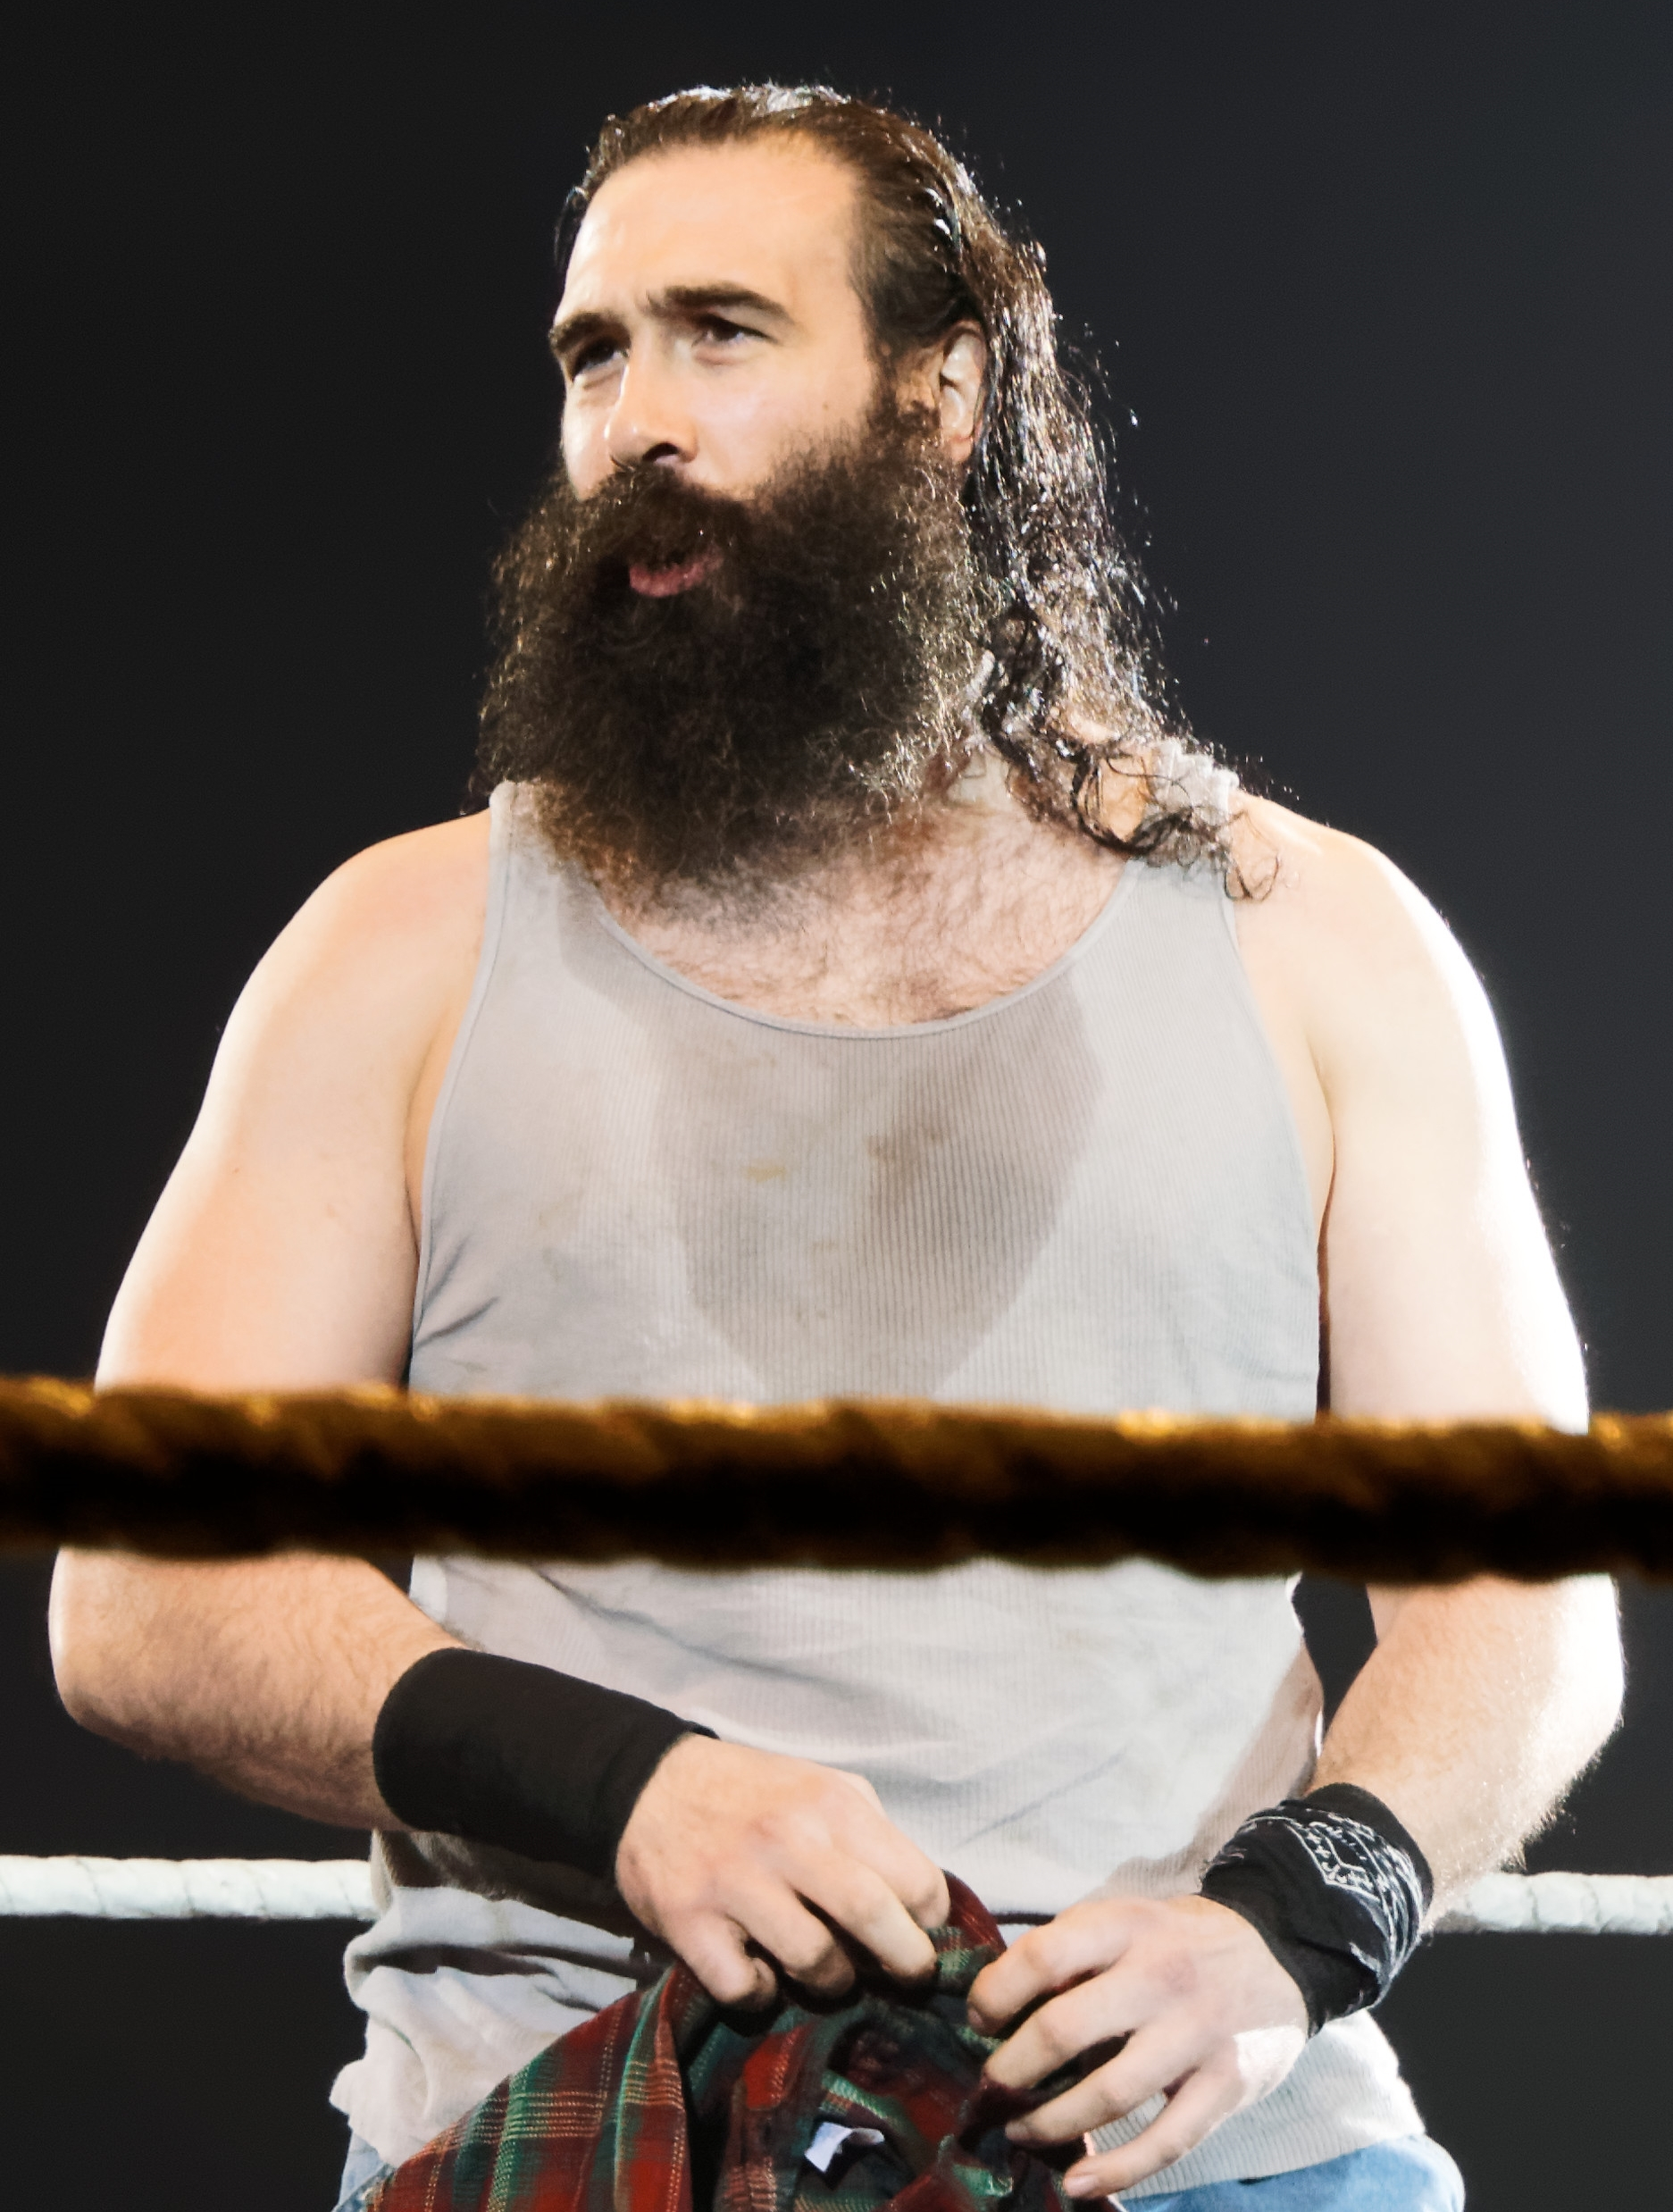 The 38-year old son of father (?) and mother(?) Luke Harper in 2018 photo. Luke Harper earned a  million dollar salary - leaving the net worth at 0.3 million in 2018